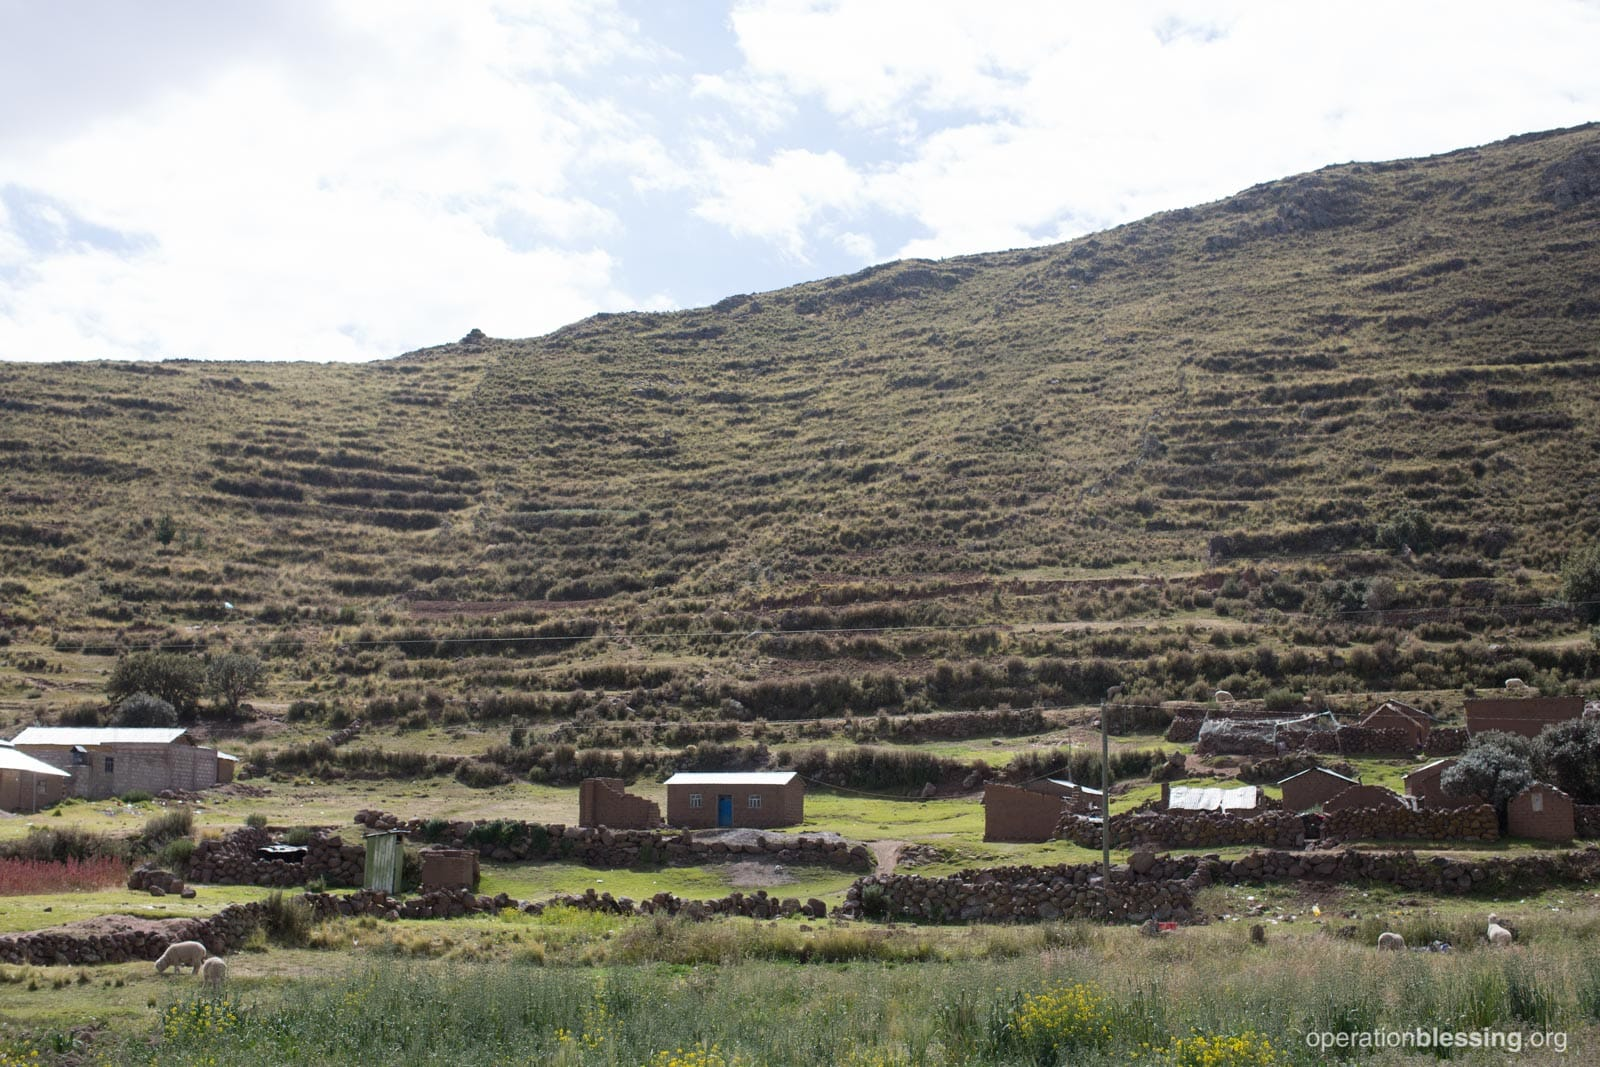 The remote village of Machacmarca in Peru.